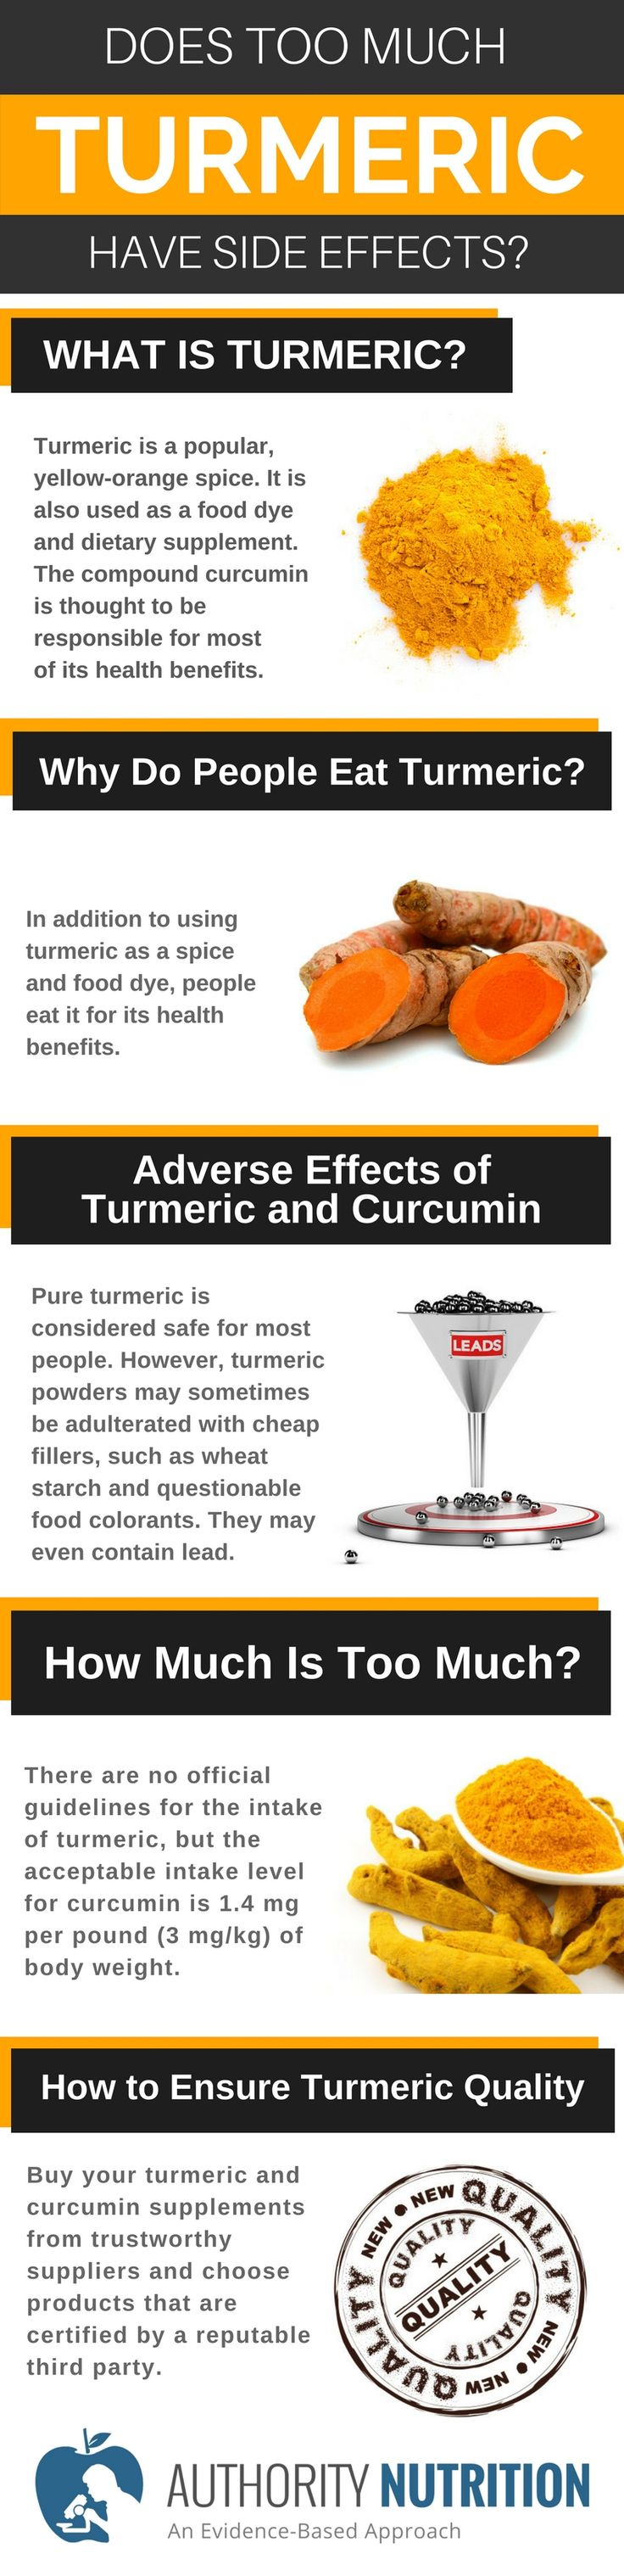 Turmeric is a popular spice that contains curcumin, a powerful bioactive compound. This article explores whether it has any side effects at high doses:https://authoritynutrition.com/turmeric-side-effects/